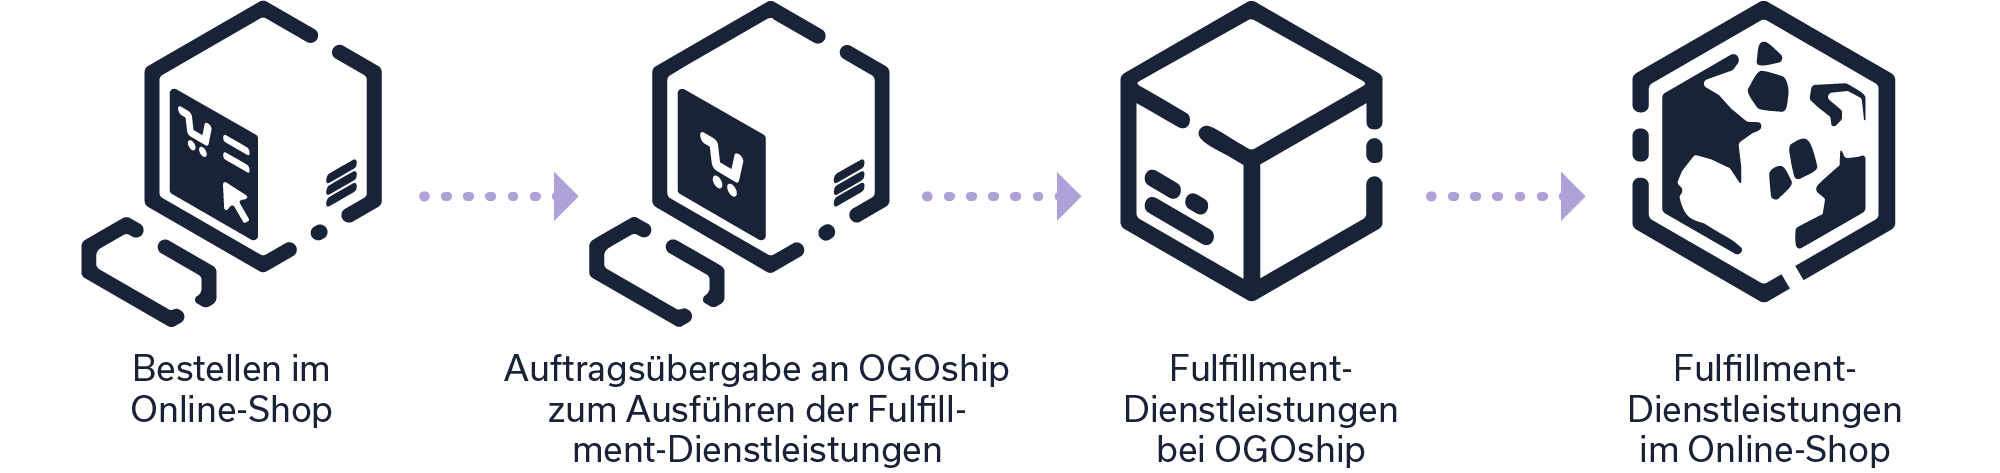 ogoship-order-fulfillment-de